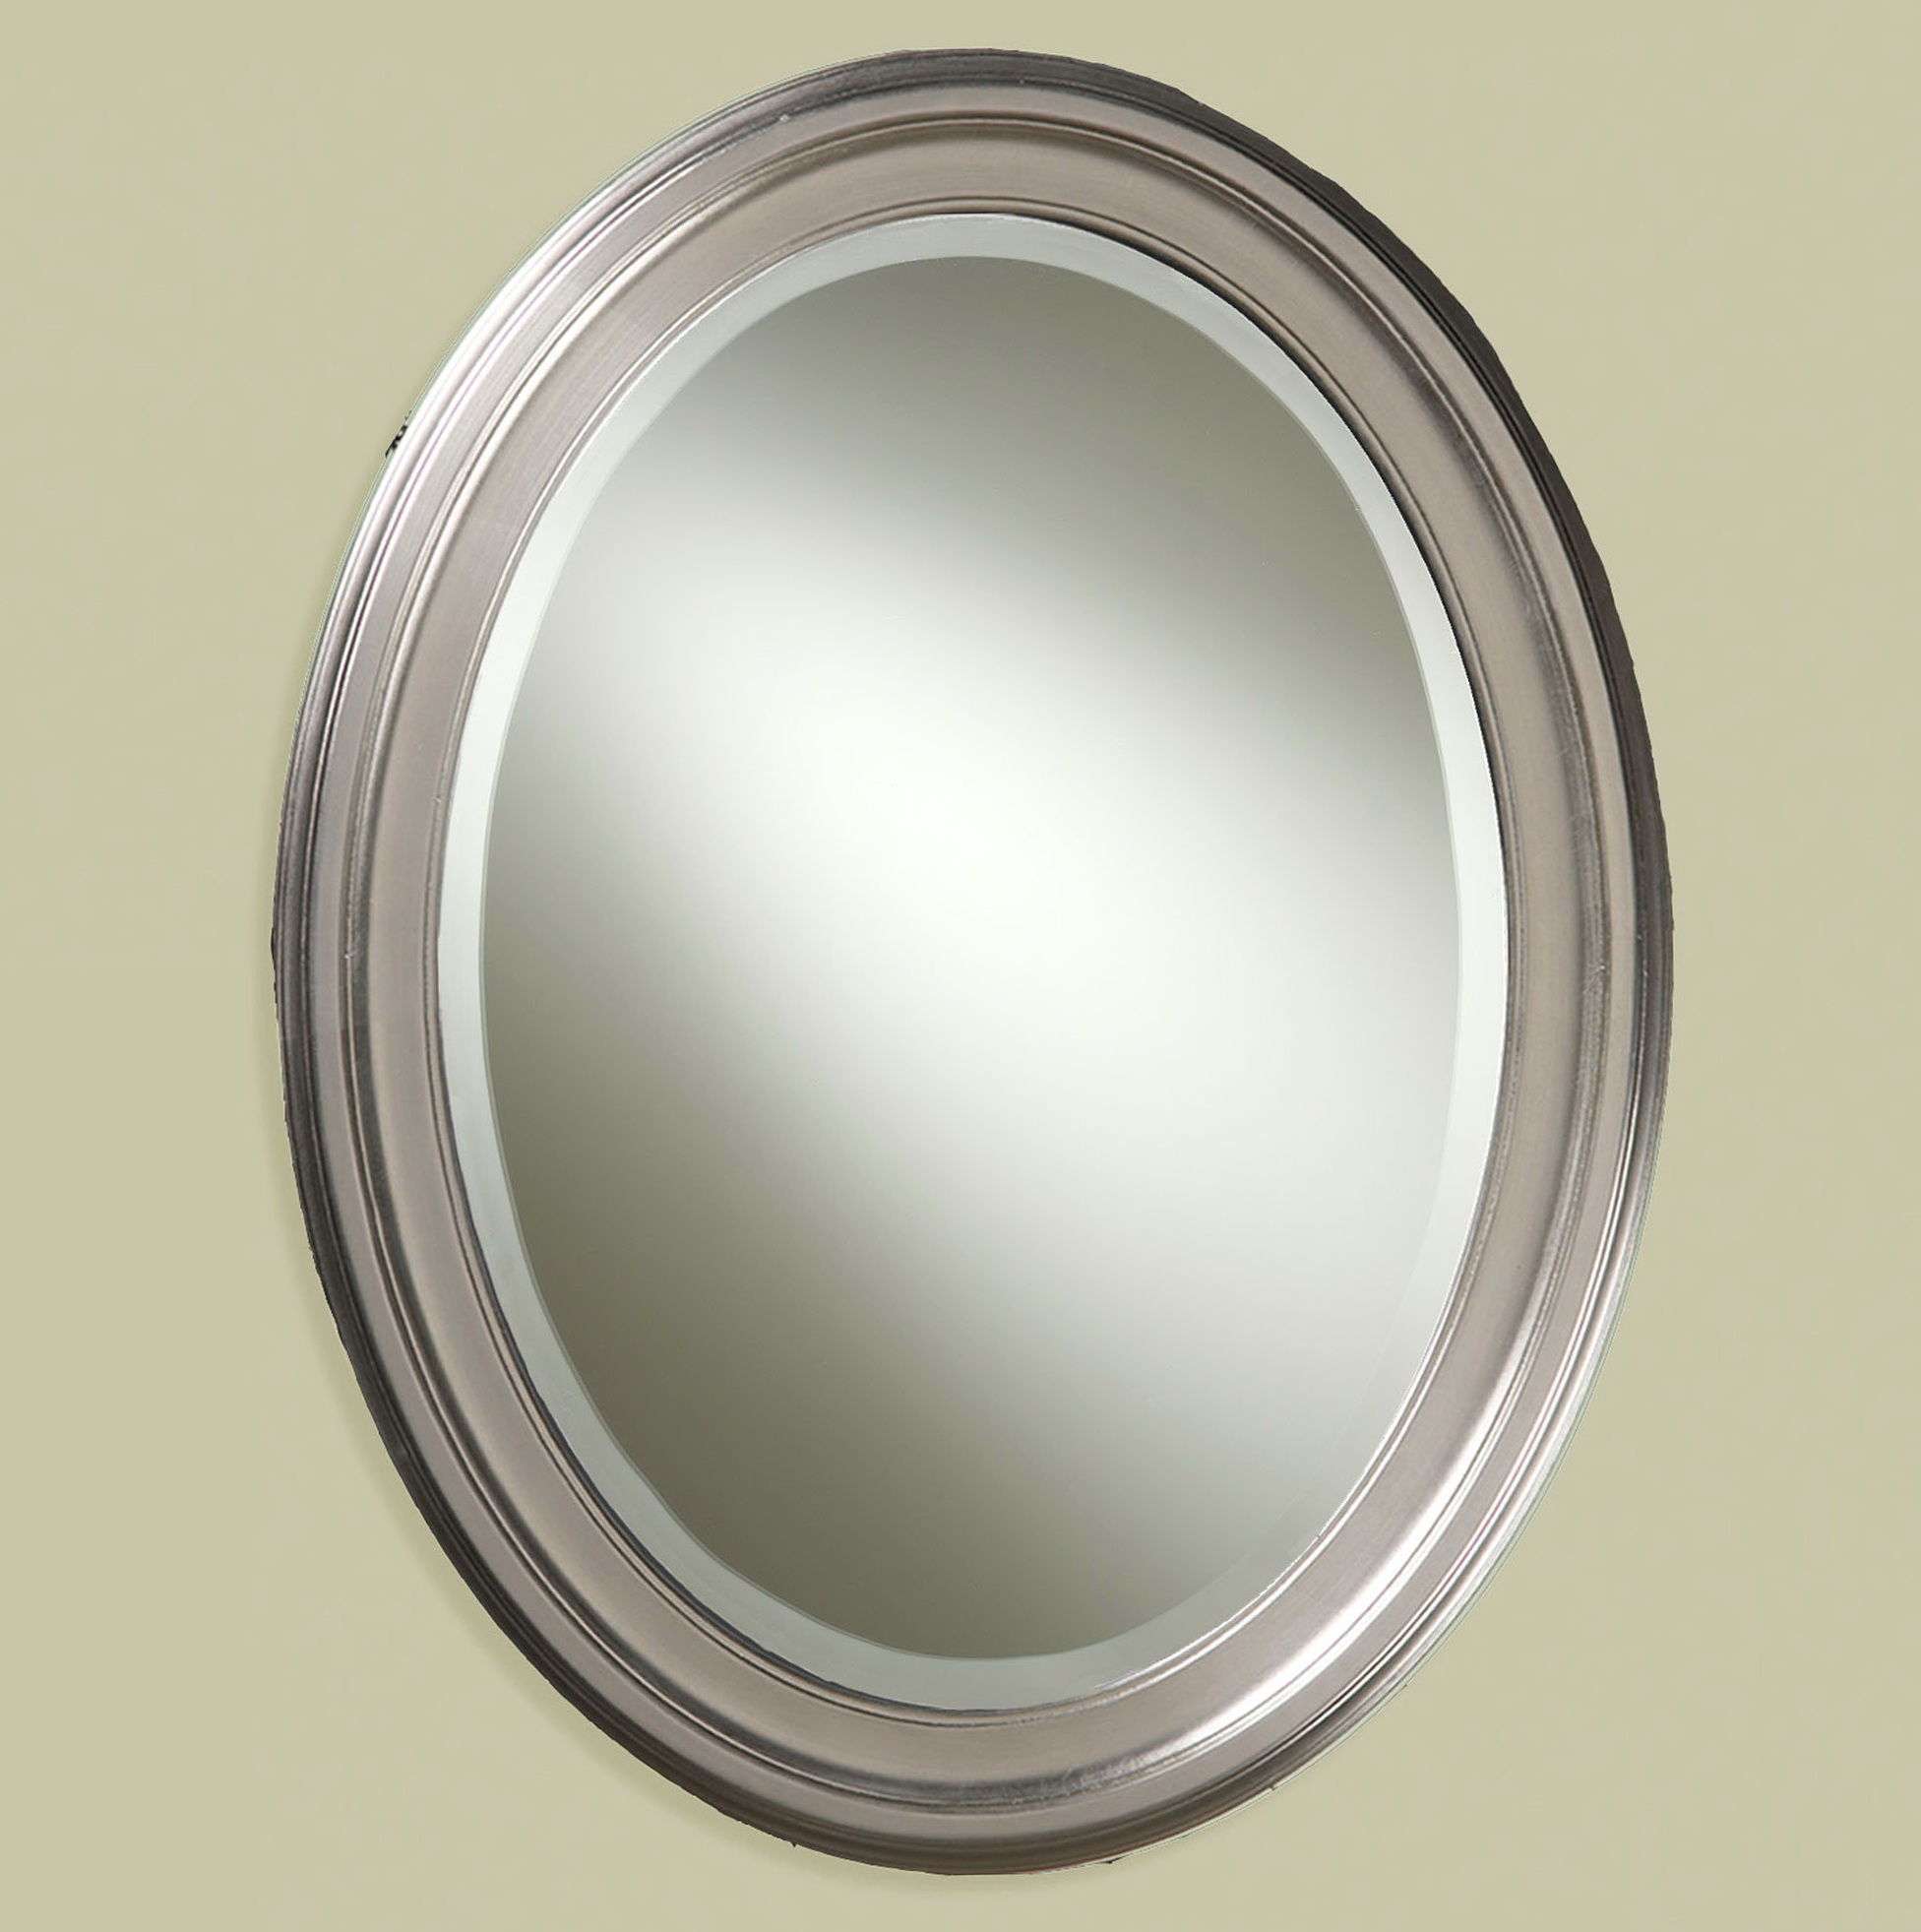 Oval bathroom mirrors brushed nickel home design ideas for Bathroom mirrors brushed nickel